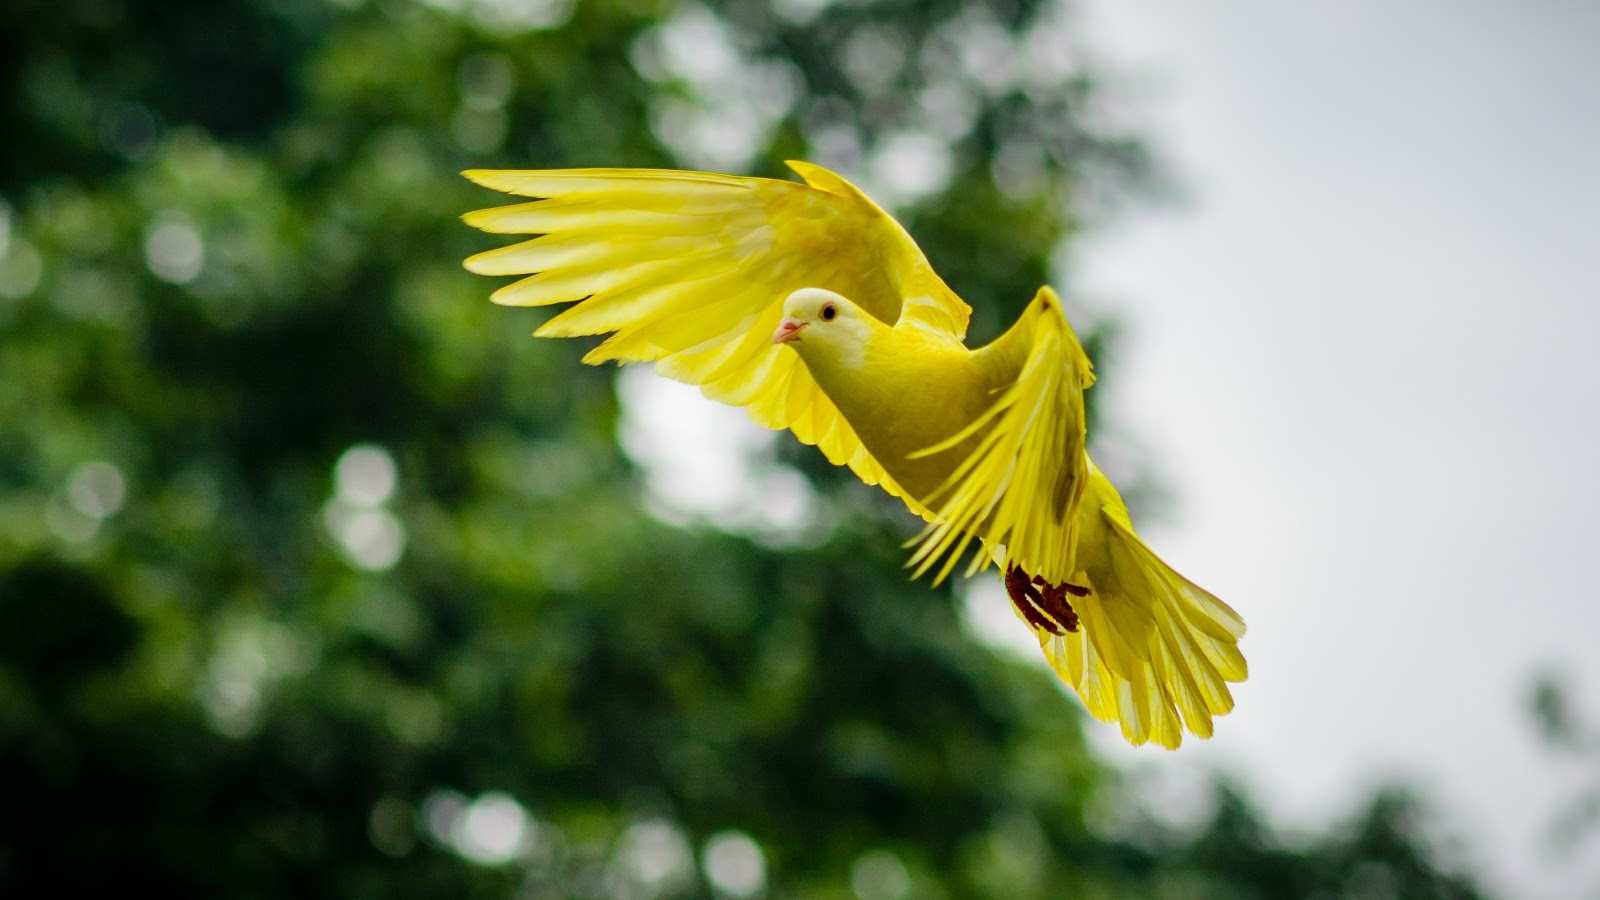 yellow-avian-bird-bright-images